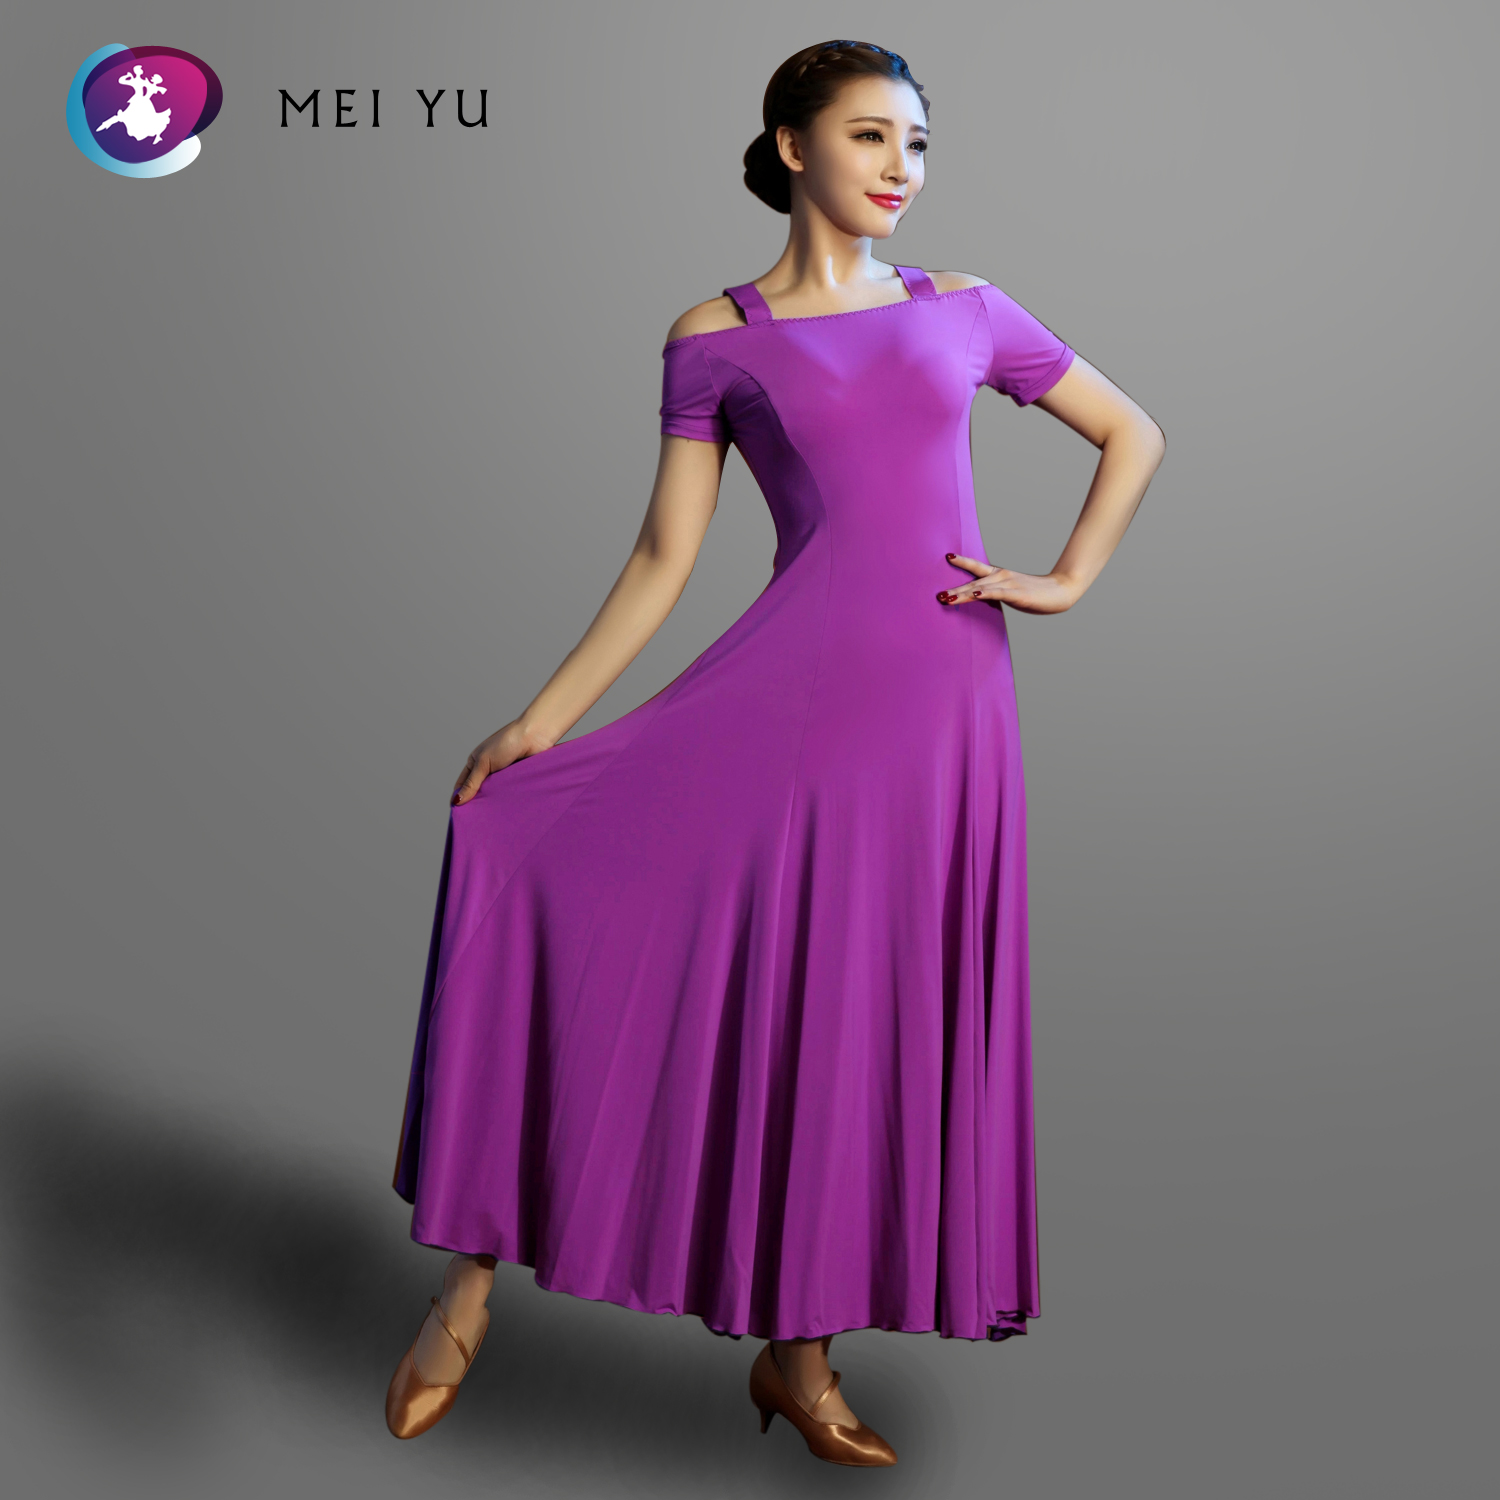 Ballroom Mei Yu Hb035 Modern Dance Costume Women Lady Adult Waltzing Tango Dancing Dress Ballroom Costume Evening Party Dress Relieving Heat And Sunstroke Stage & Dance Wear